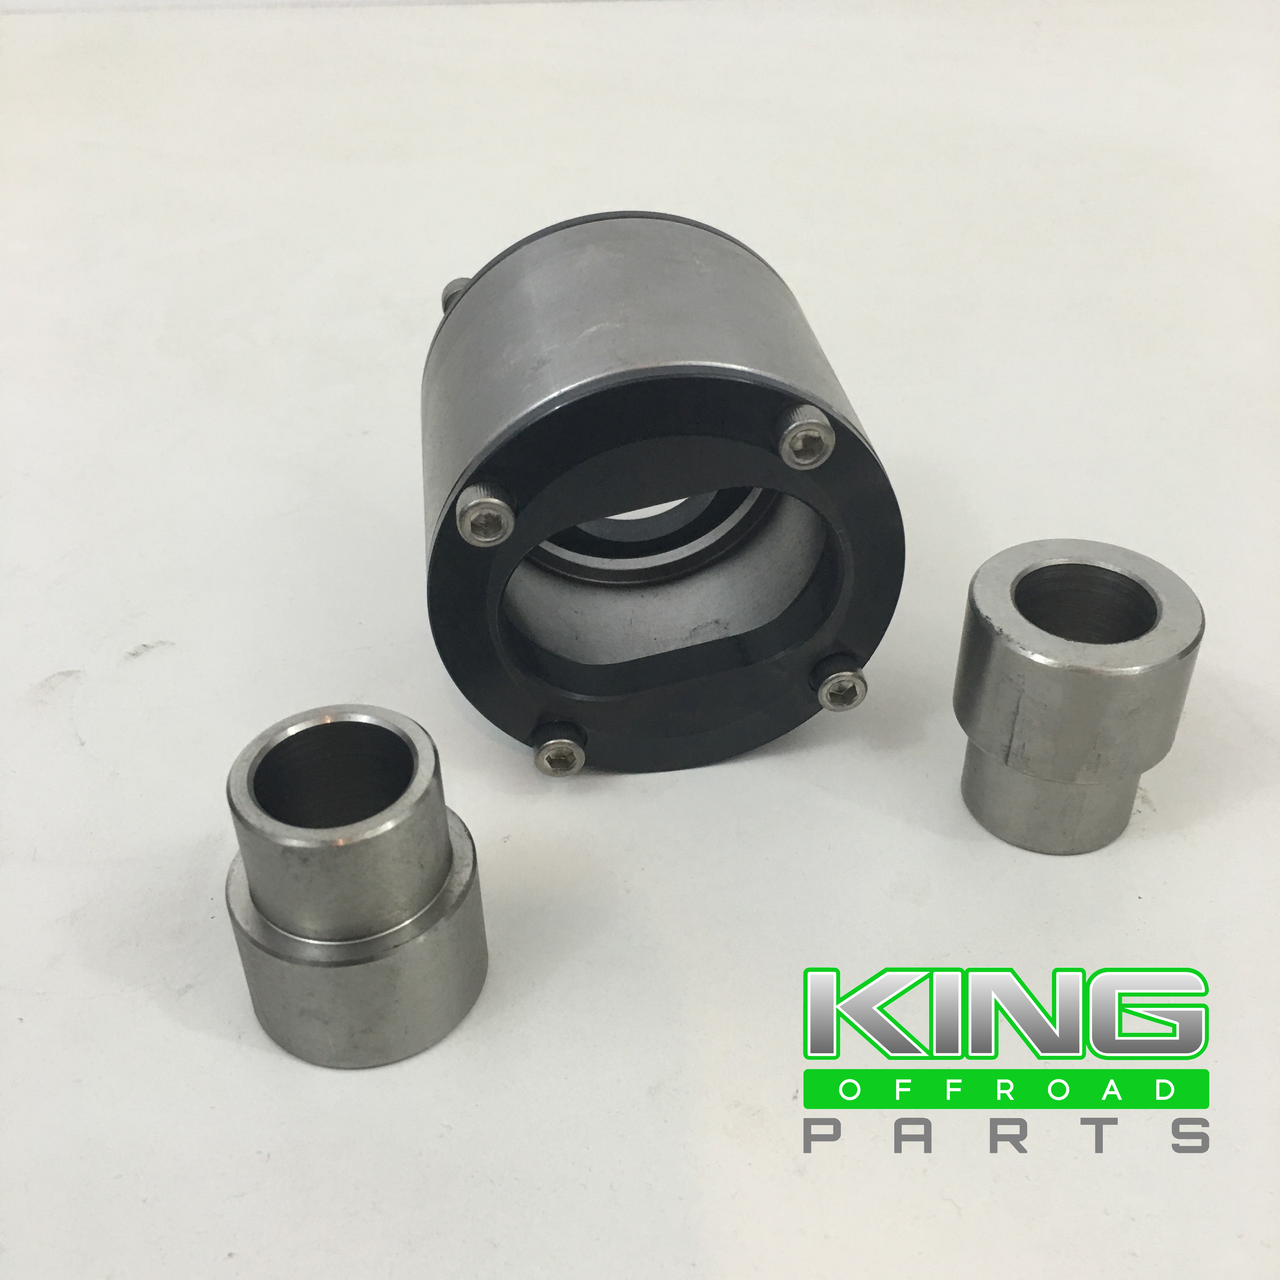 KING OFF ROAD PARTS WOBBLE STOPPER UNIBALL KIT FOR TRAILING ARMS